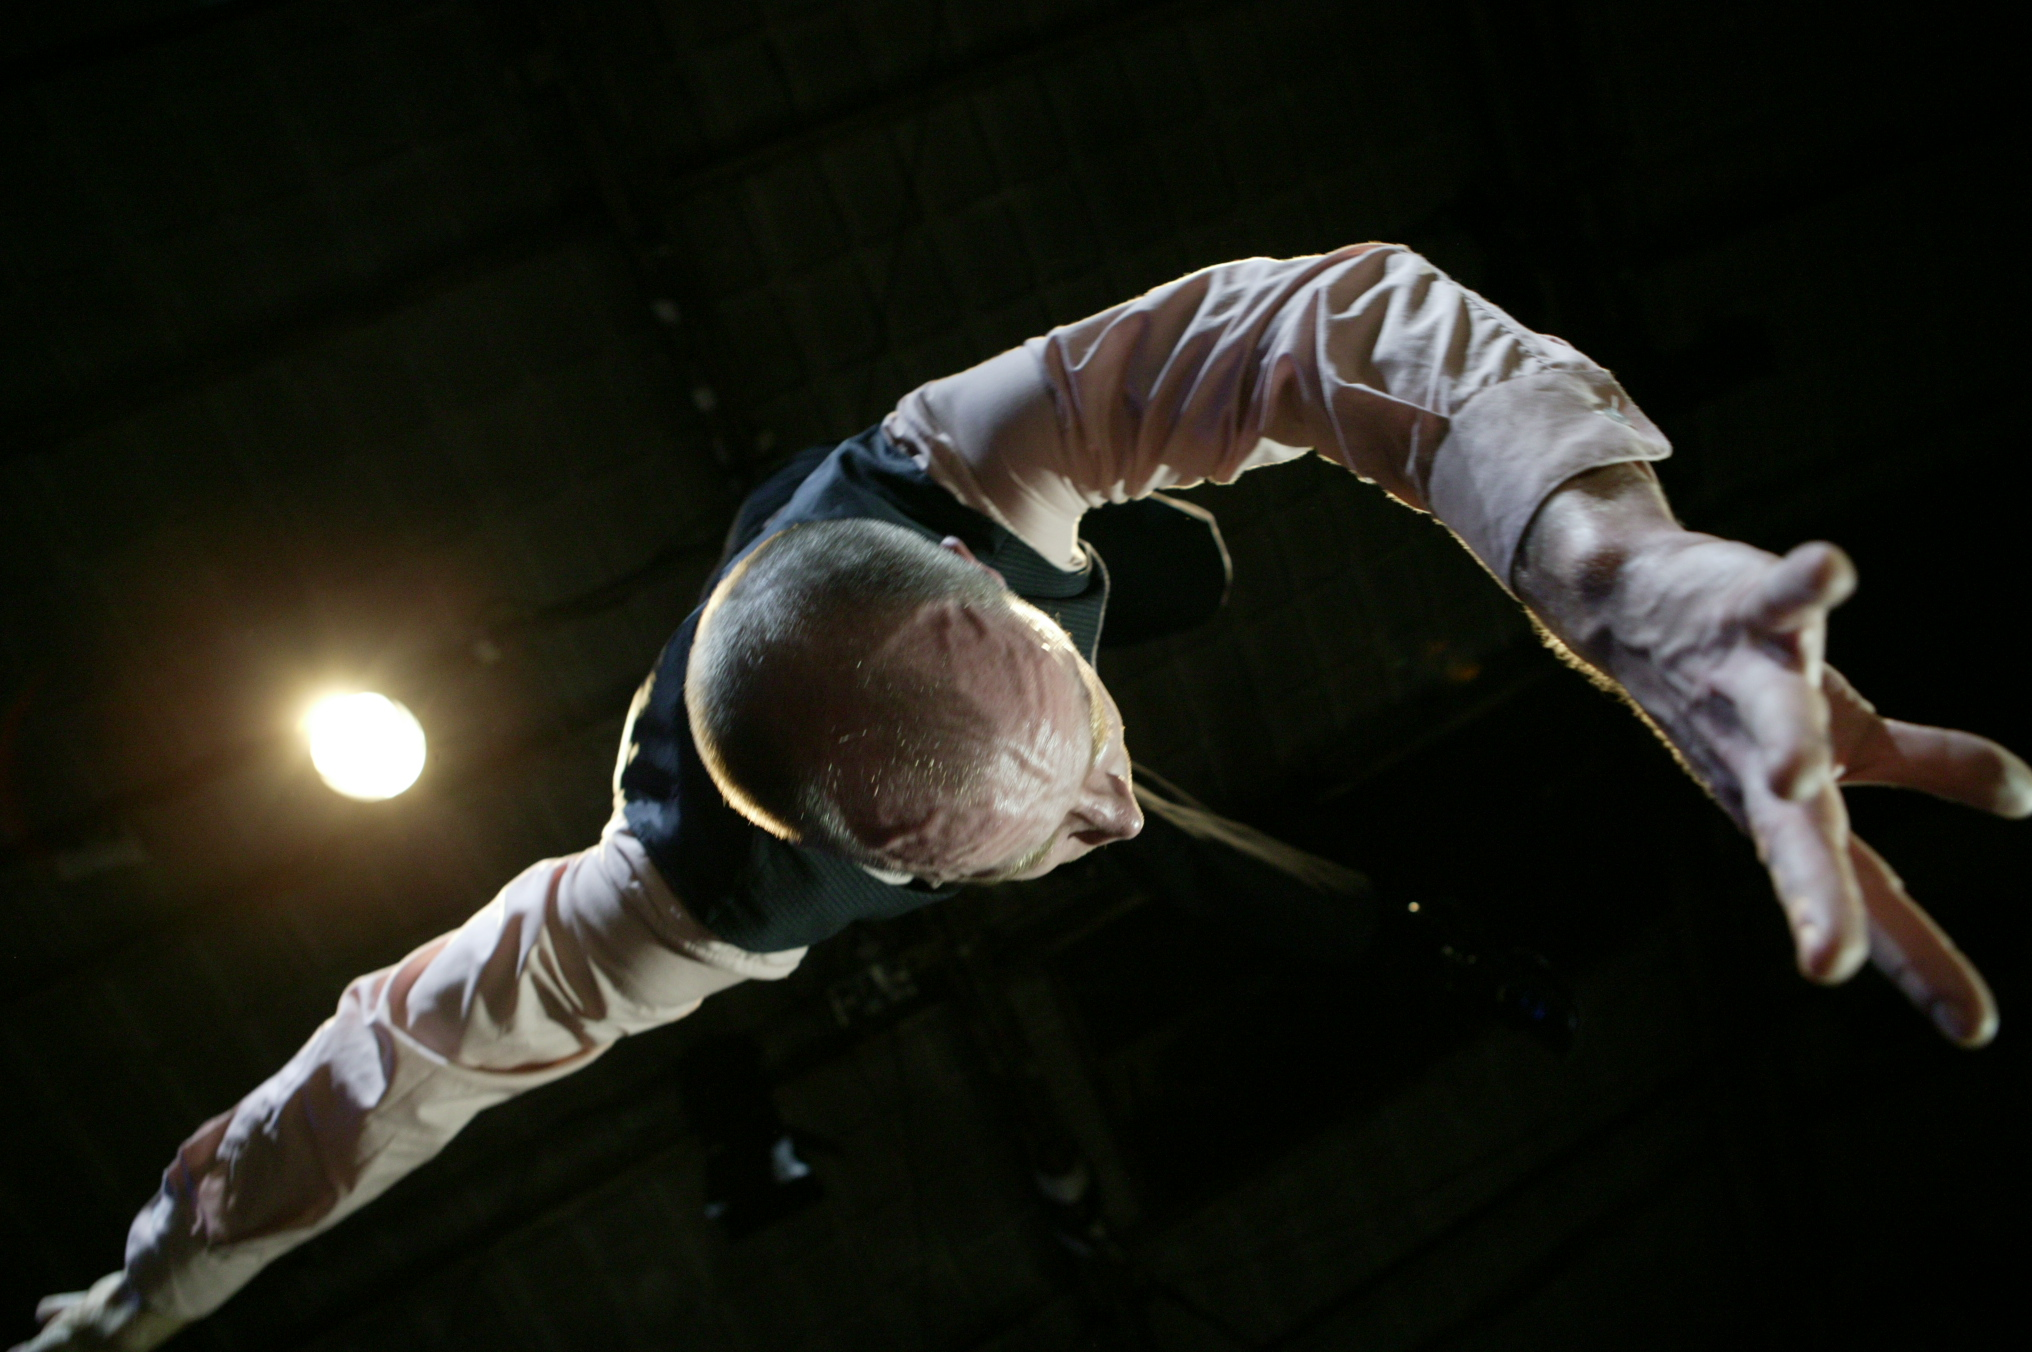 Closeup of Quarrel, in dress shirt and vest with buzz-cut hair, suspended from ceiling above camera. One arm reaches to camera. (photo: Sven Hagolani)